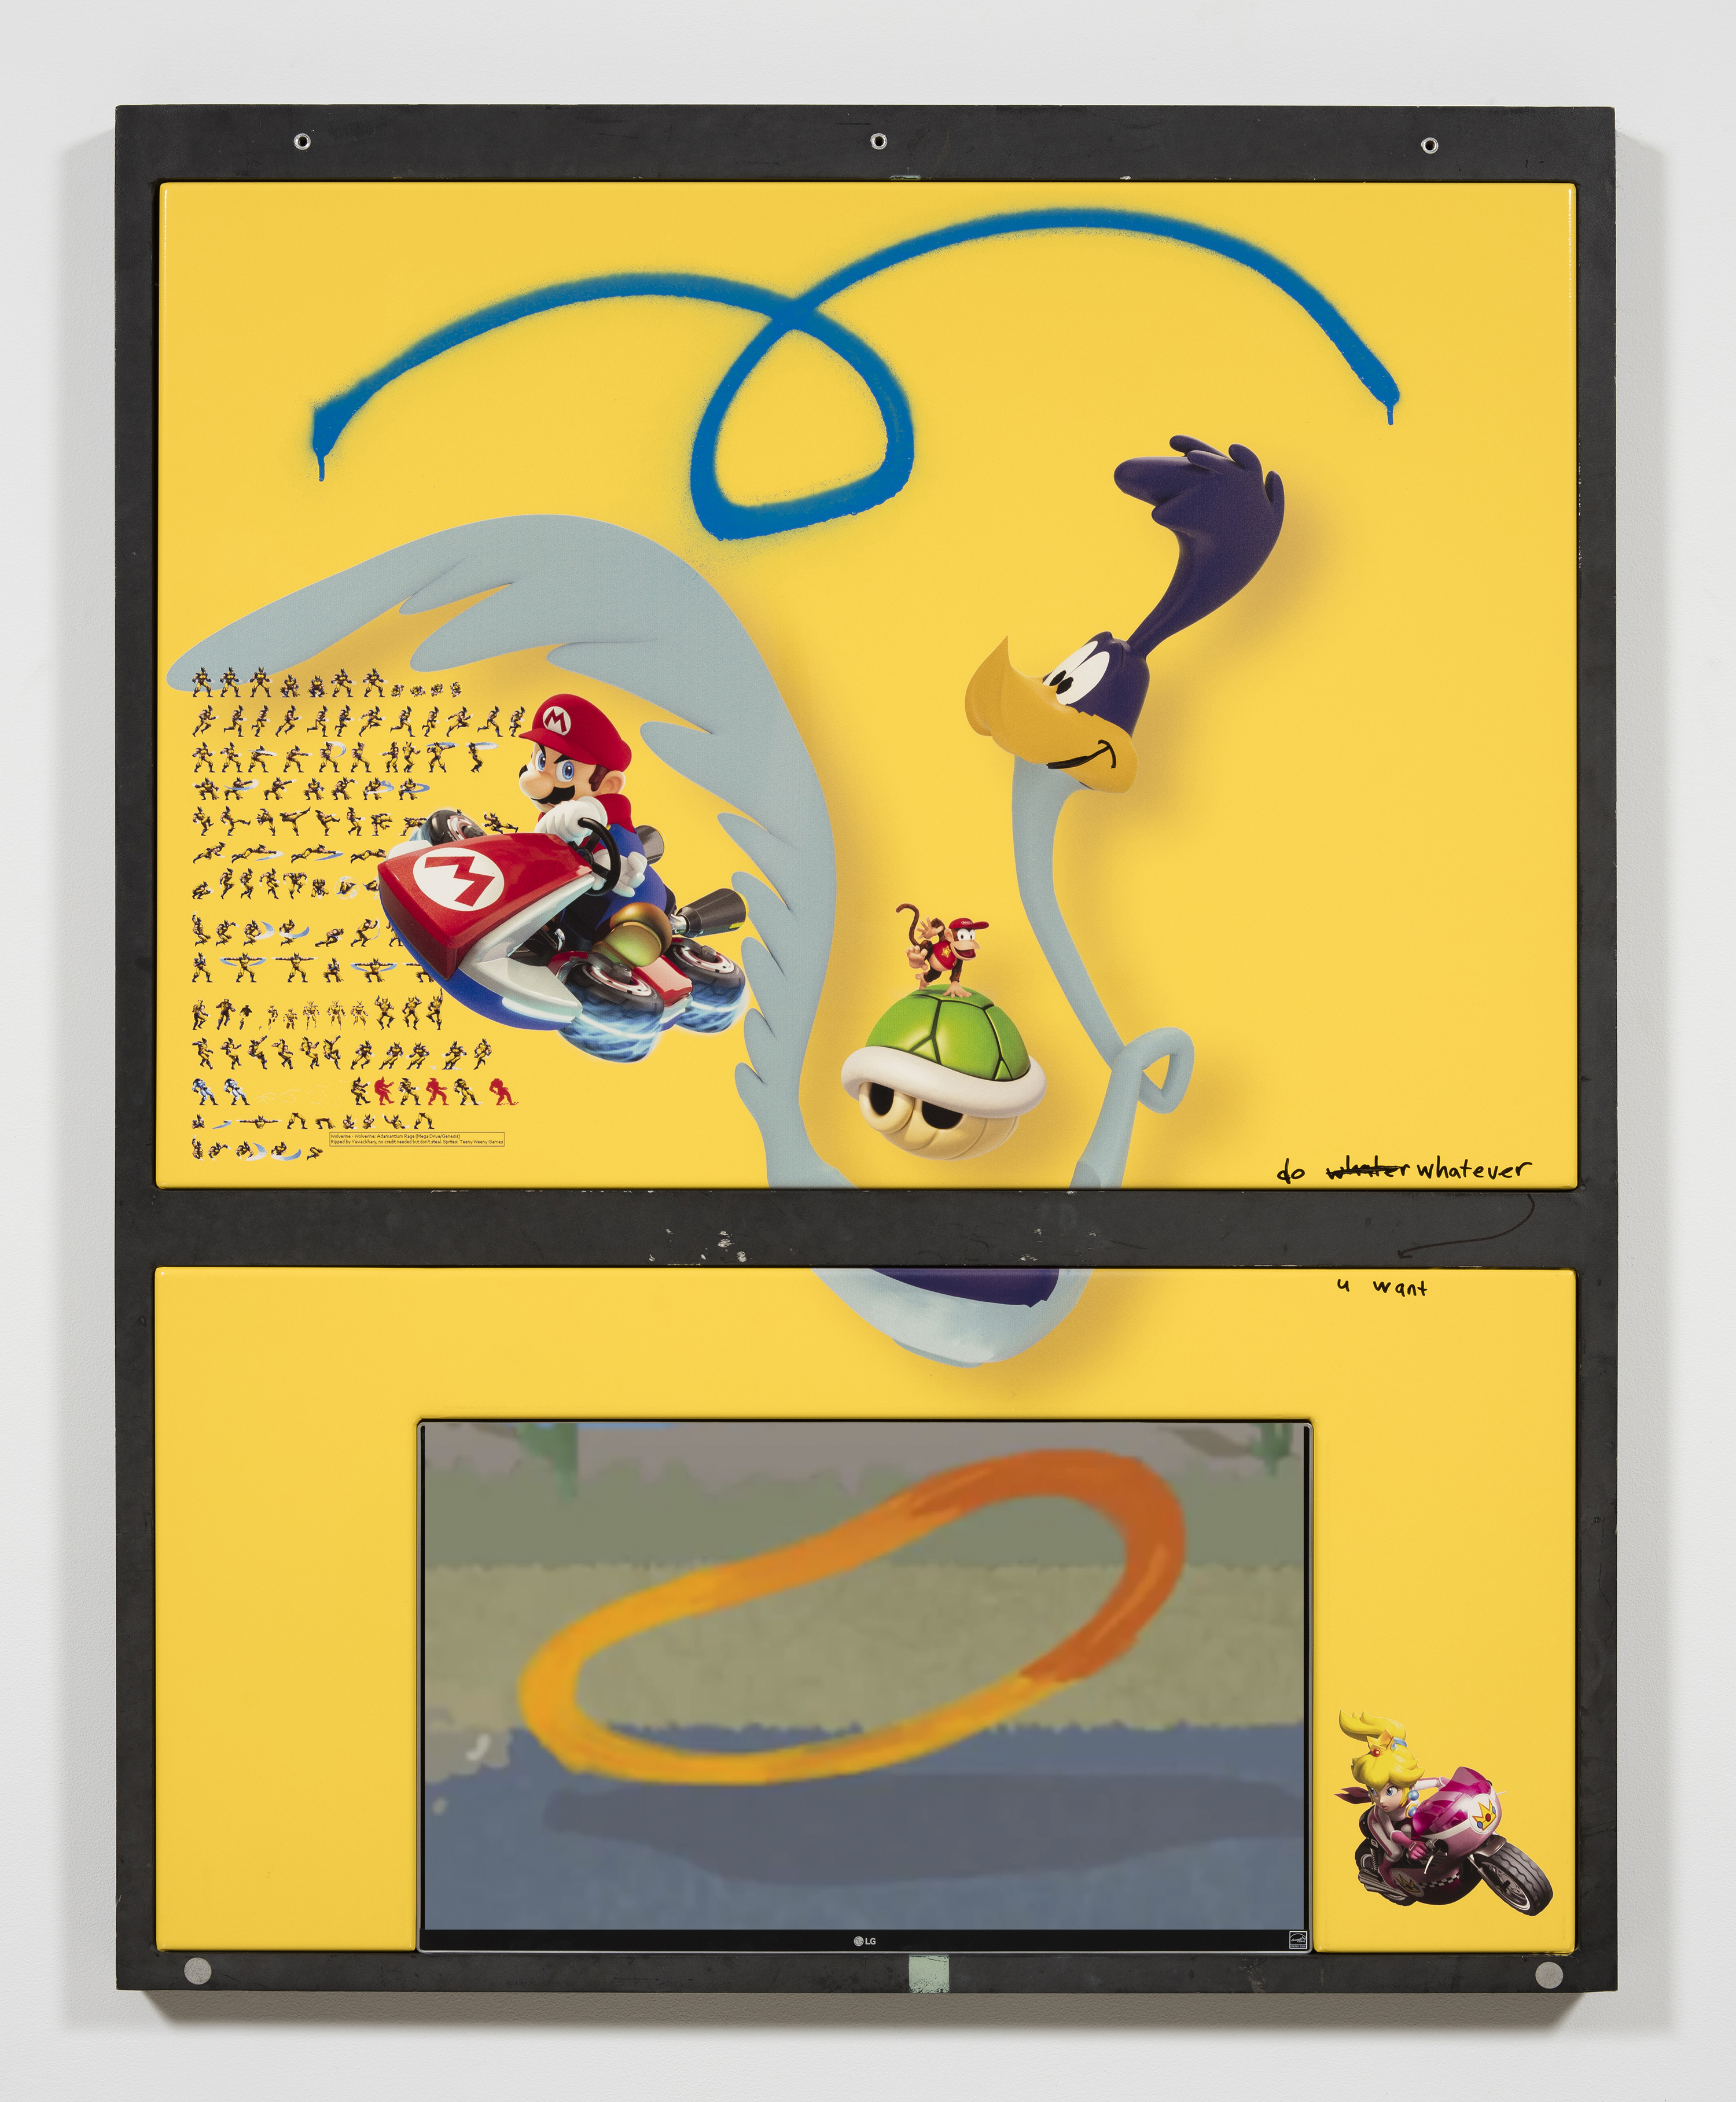 Yung Jake. <em>roadrunner (w mario, princess peach, diddy kong and wolverine)</em>, 2017. UV print, spray paint, tape and ink on powder coated steel, found metal and monitor, 51 x 40 1/2 inches  (129.5 x 102.9 cm)